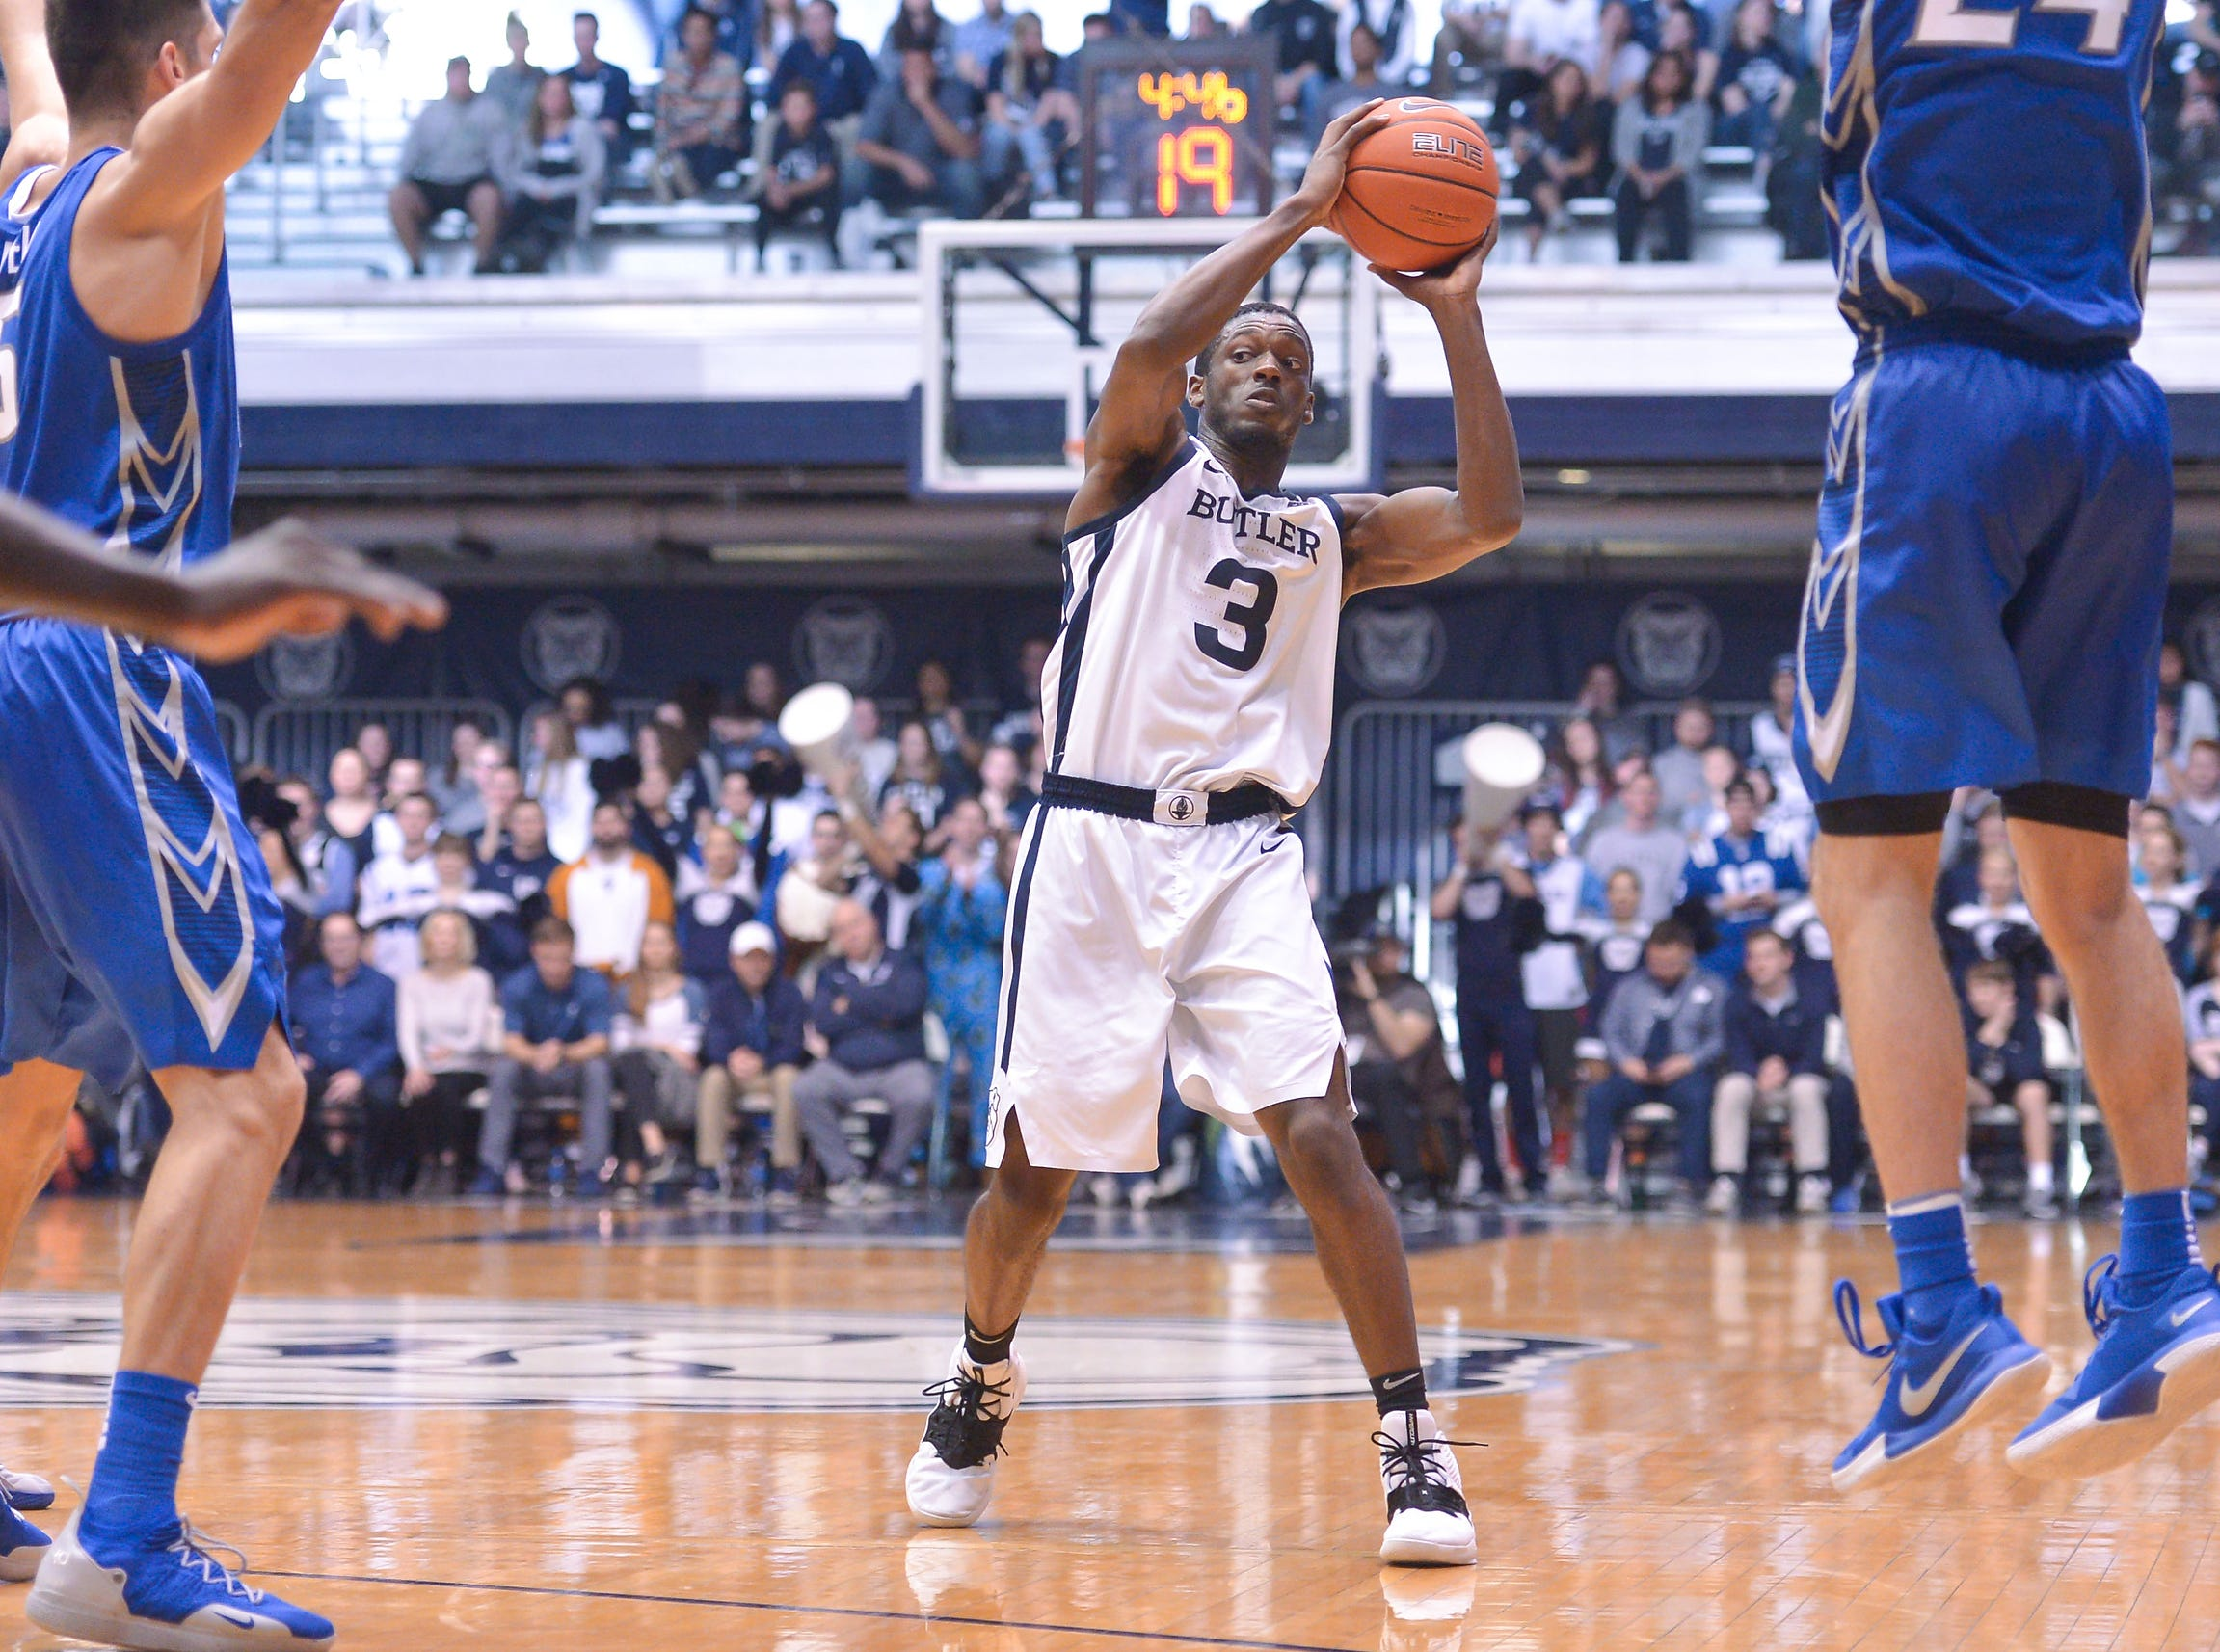 Butler Bulldogs guard Kamar Baldwin (3) looks for an outlet against Creighton Bluejays defense during the second half of game action between Butler University and Creighton University, at Hinkle Fieldhouse in Indianapolis, Indiana on Saturday, Jan. 5, 2019. The Butler Bulldogs defeated the Creighton Bluejays 84-69.